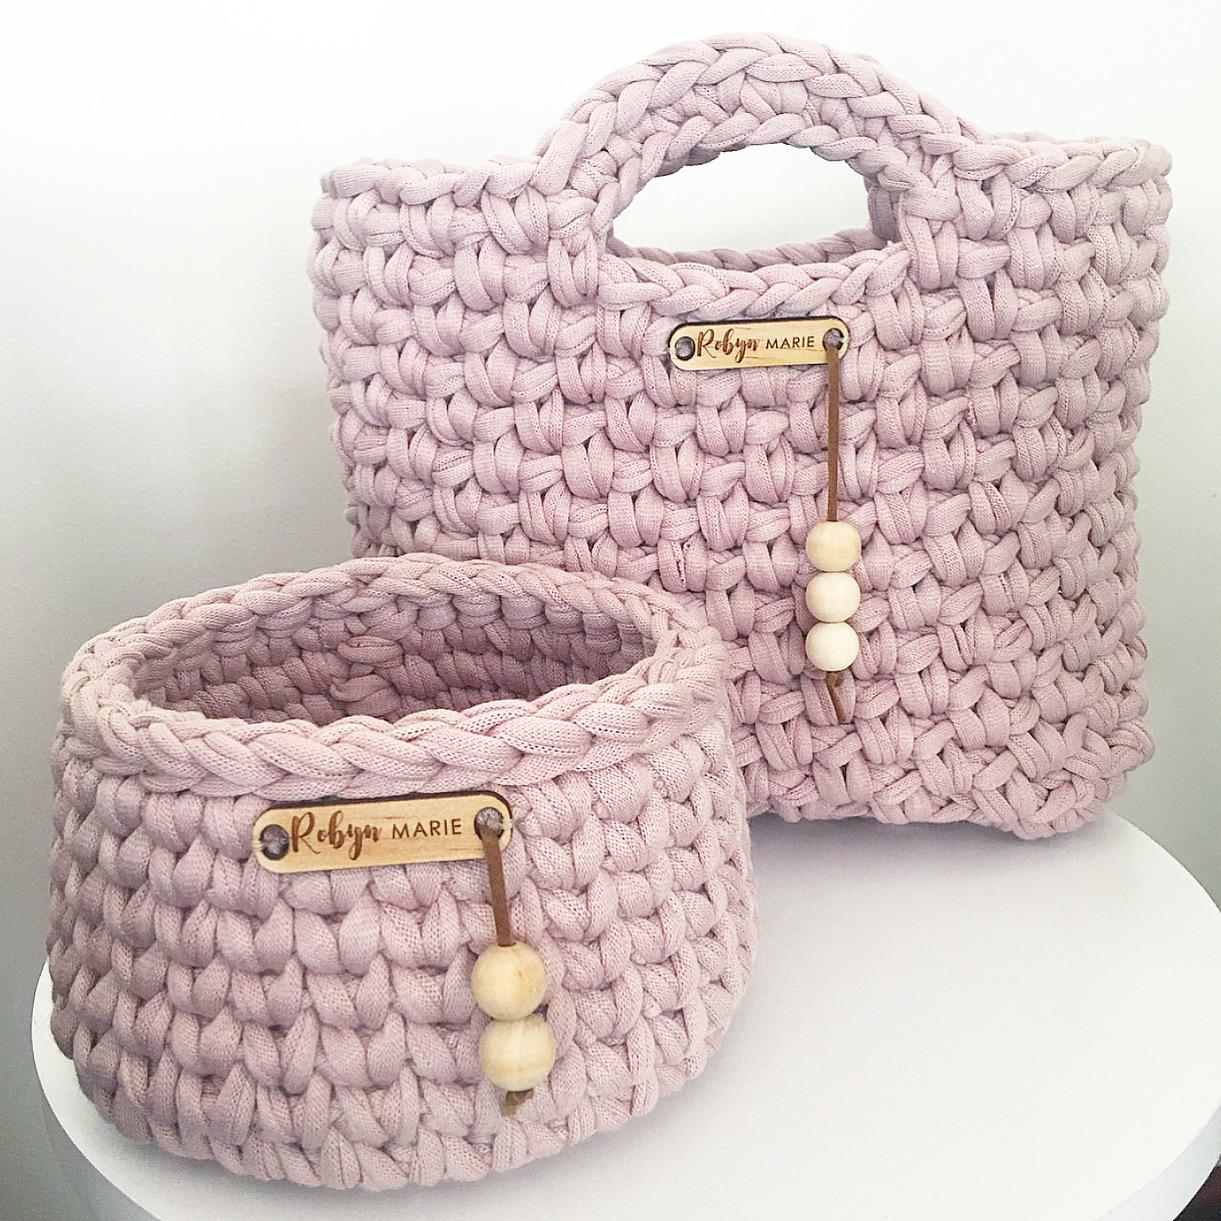 Crochet bag and planter